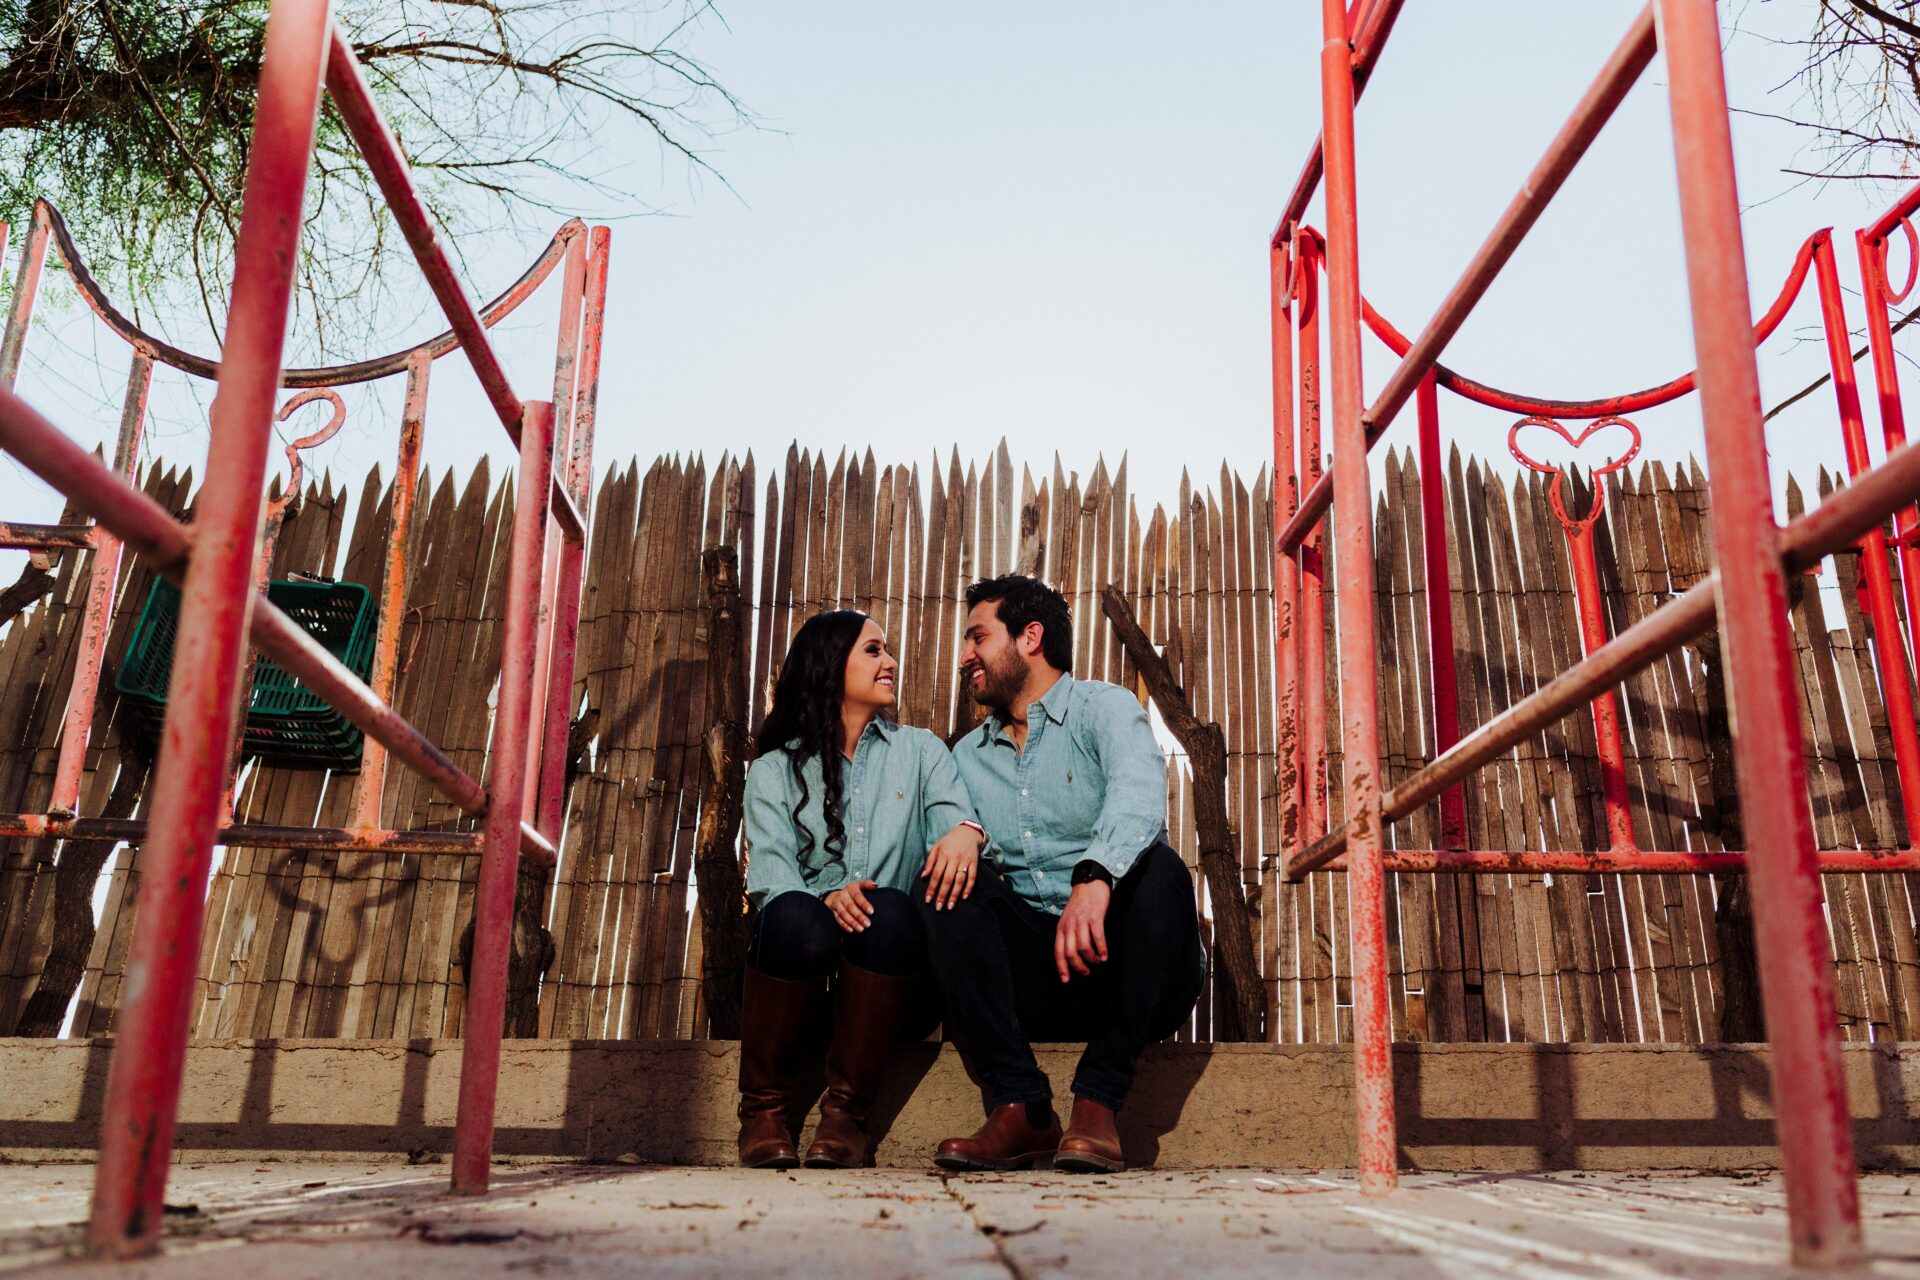 javier_noriega_fotografo_save_the_date_zacatecas_wedding_photographer10